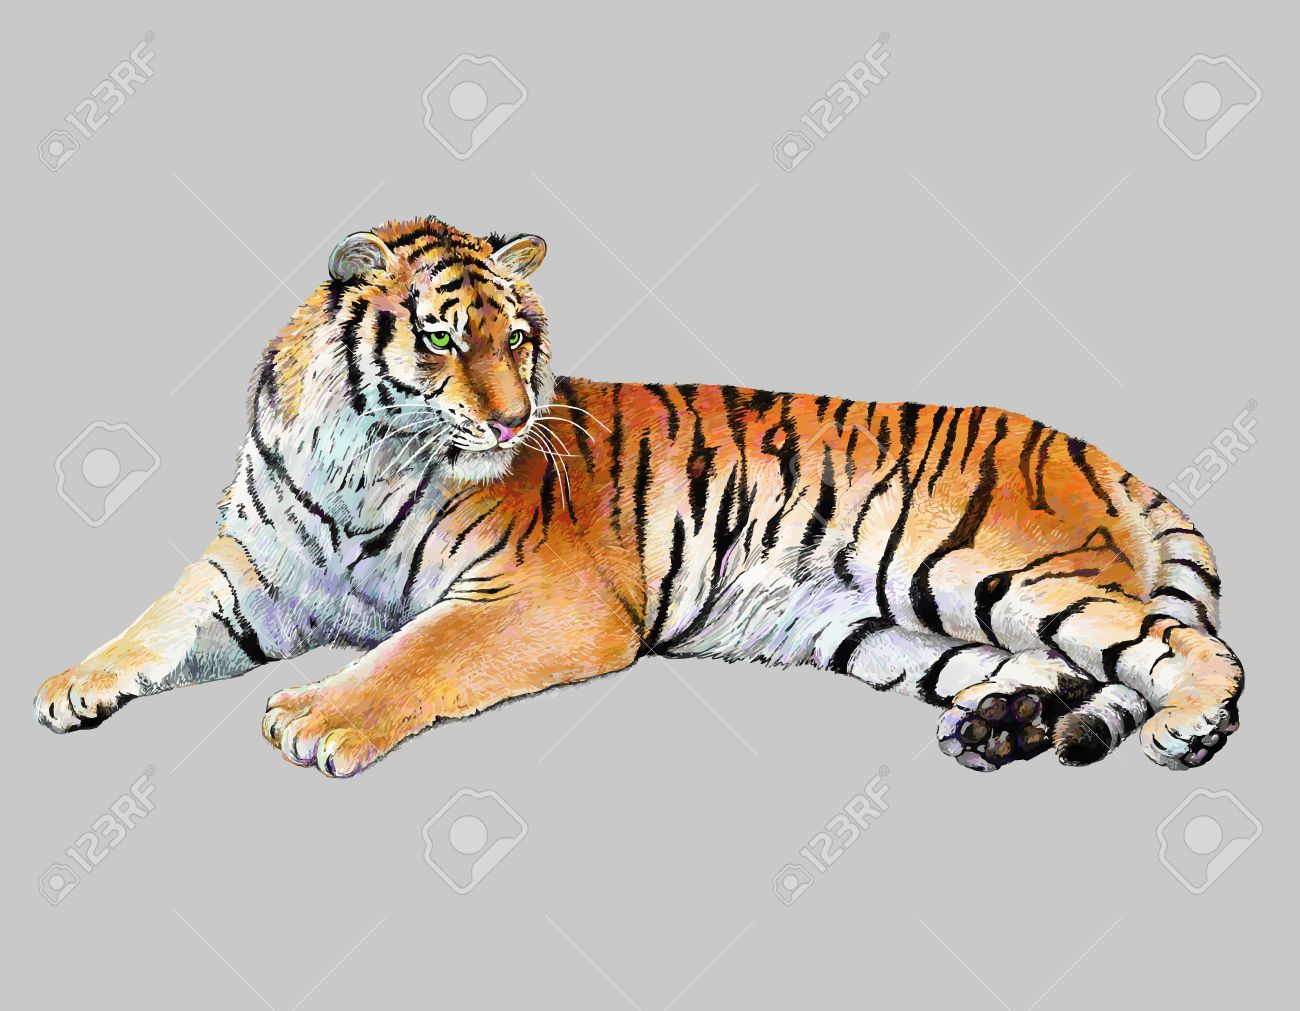 scetch colored drawing realistic illustration of tiger, isolated, vector version - 19894548